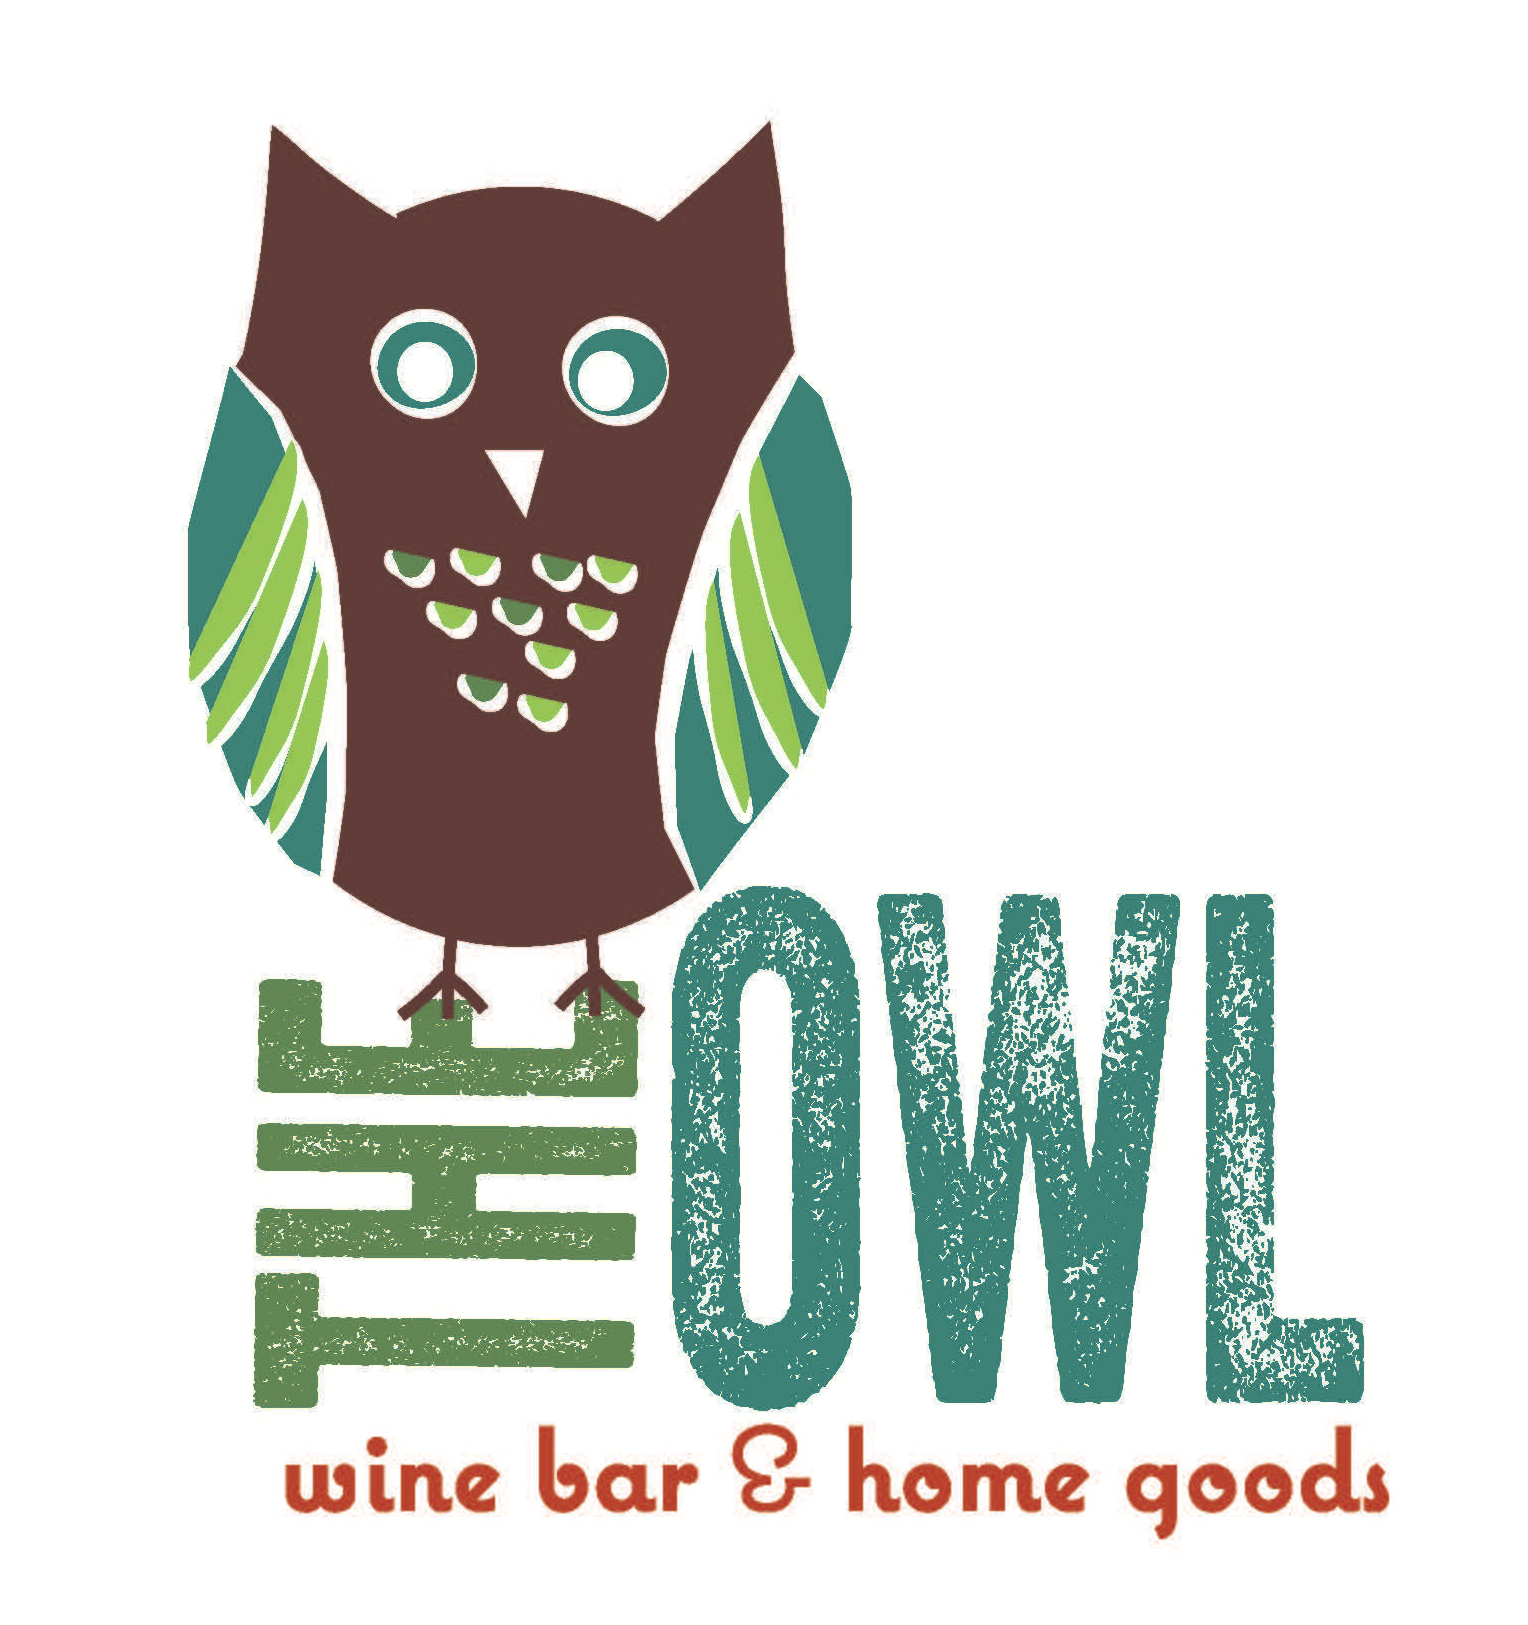 owl_logo_outline